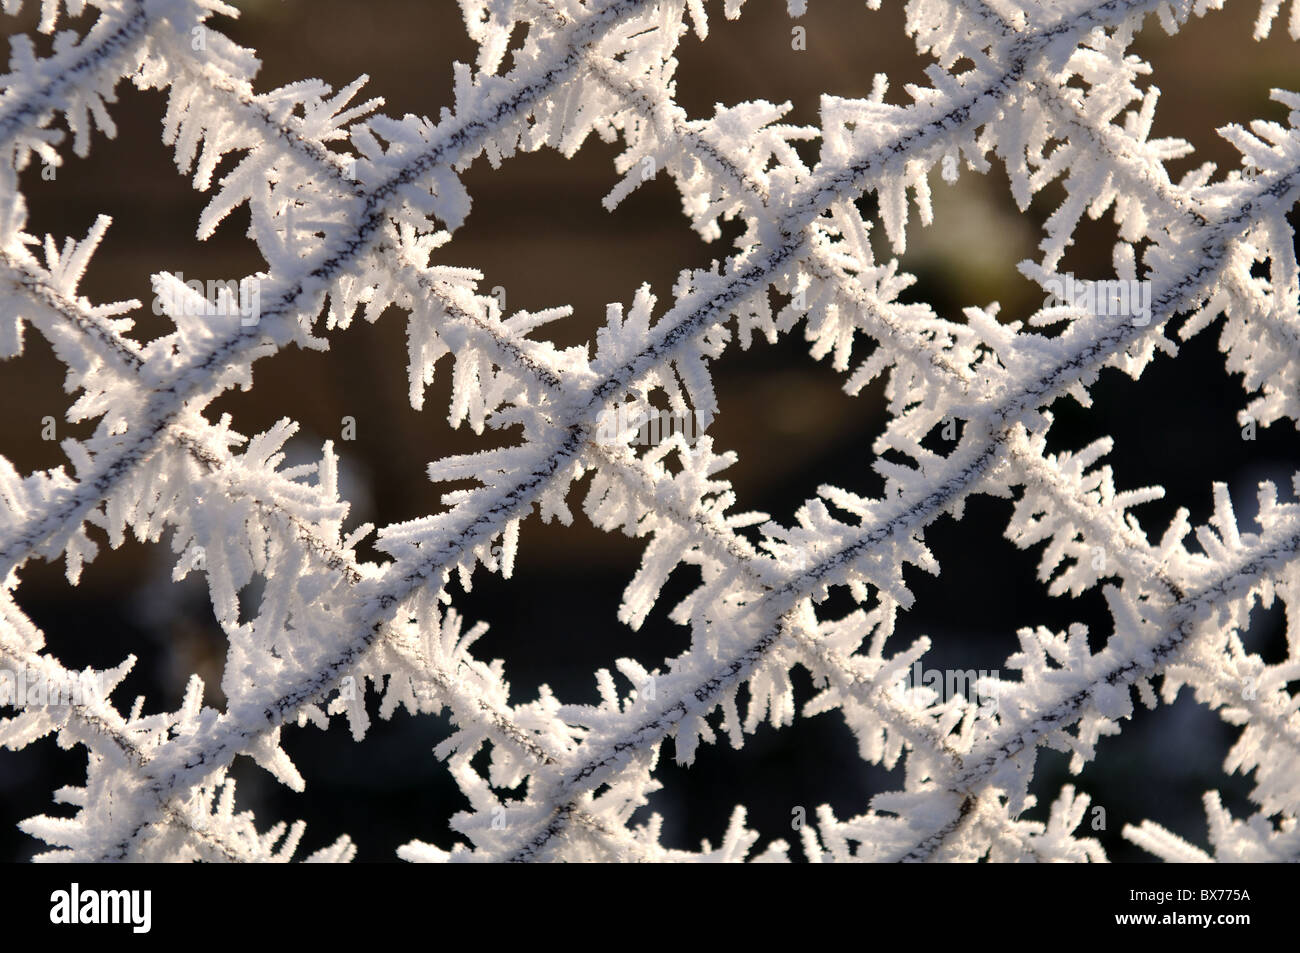 Hoar frost on chain-link fencing - Stock Image